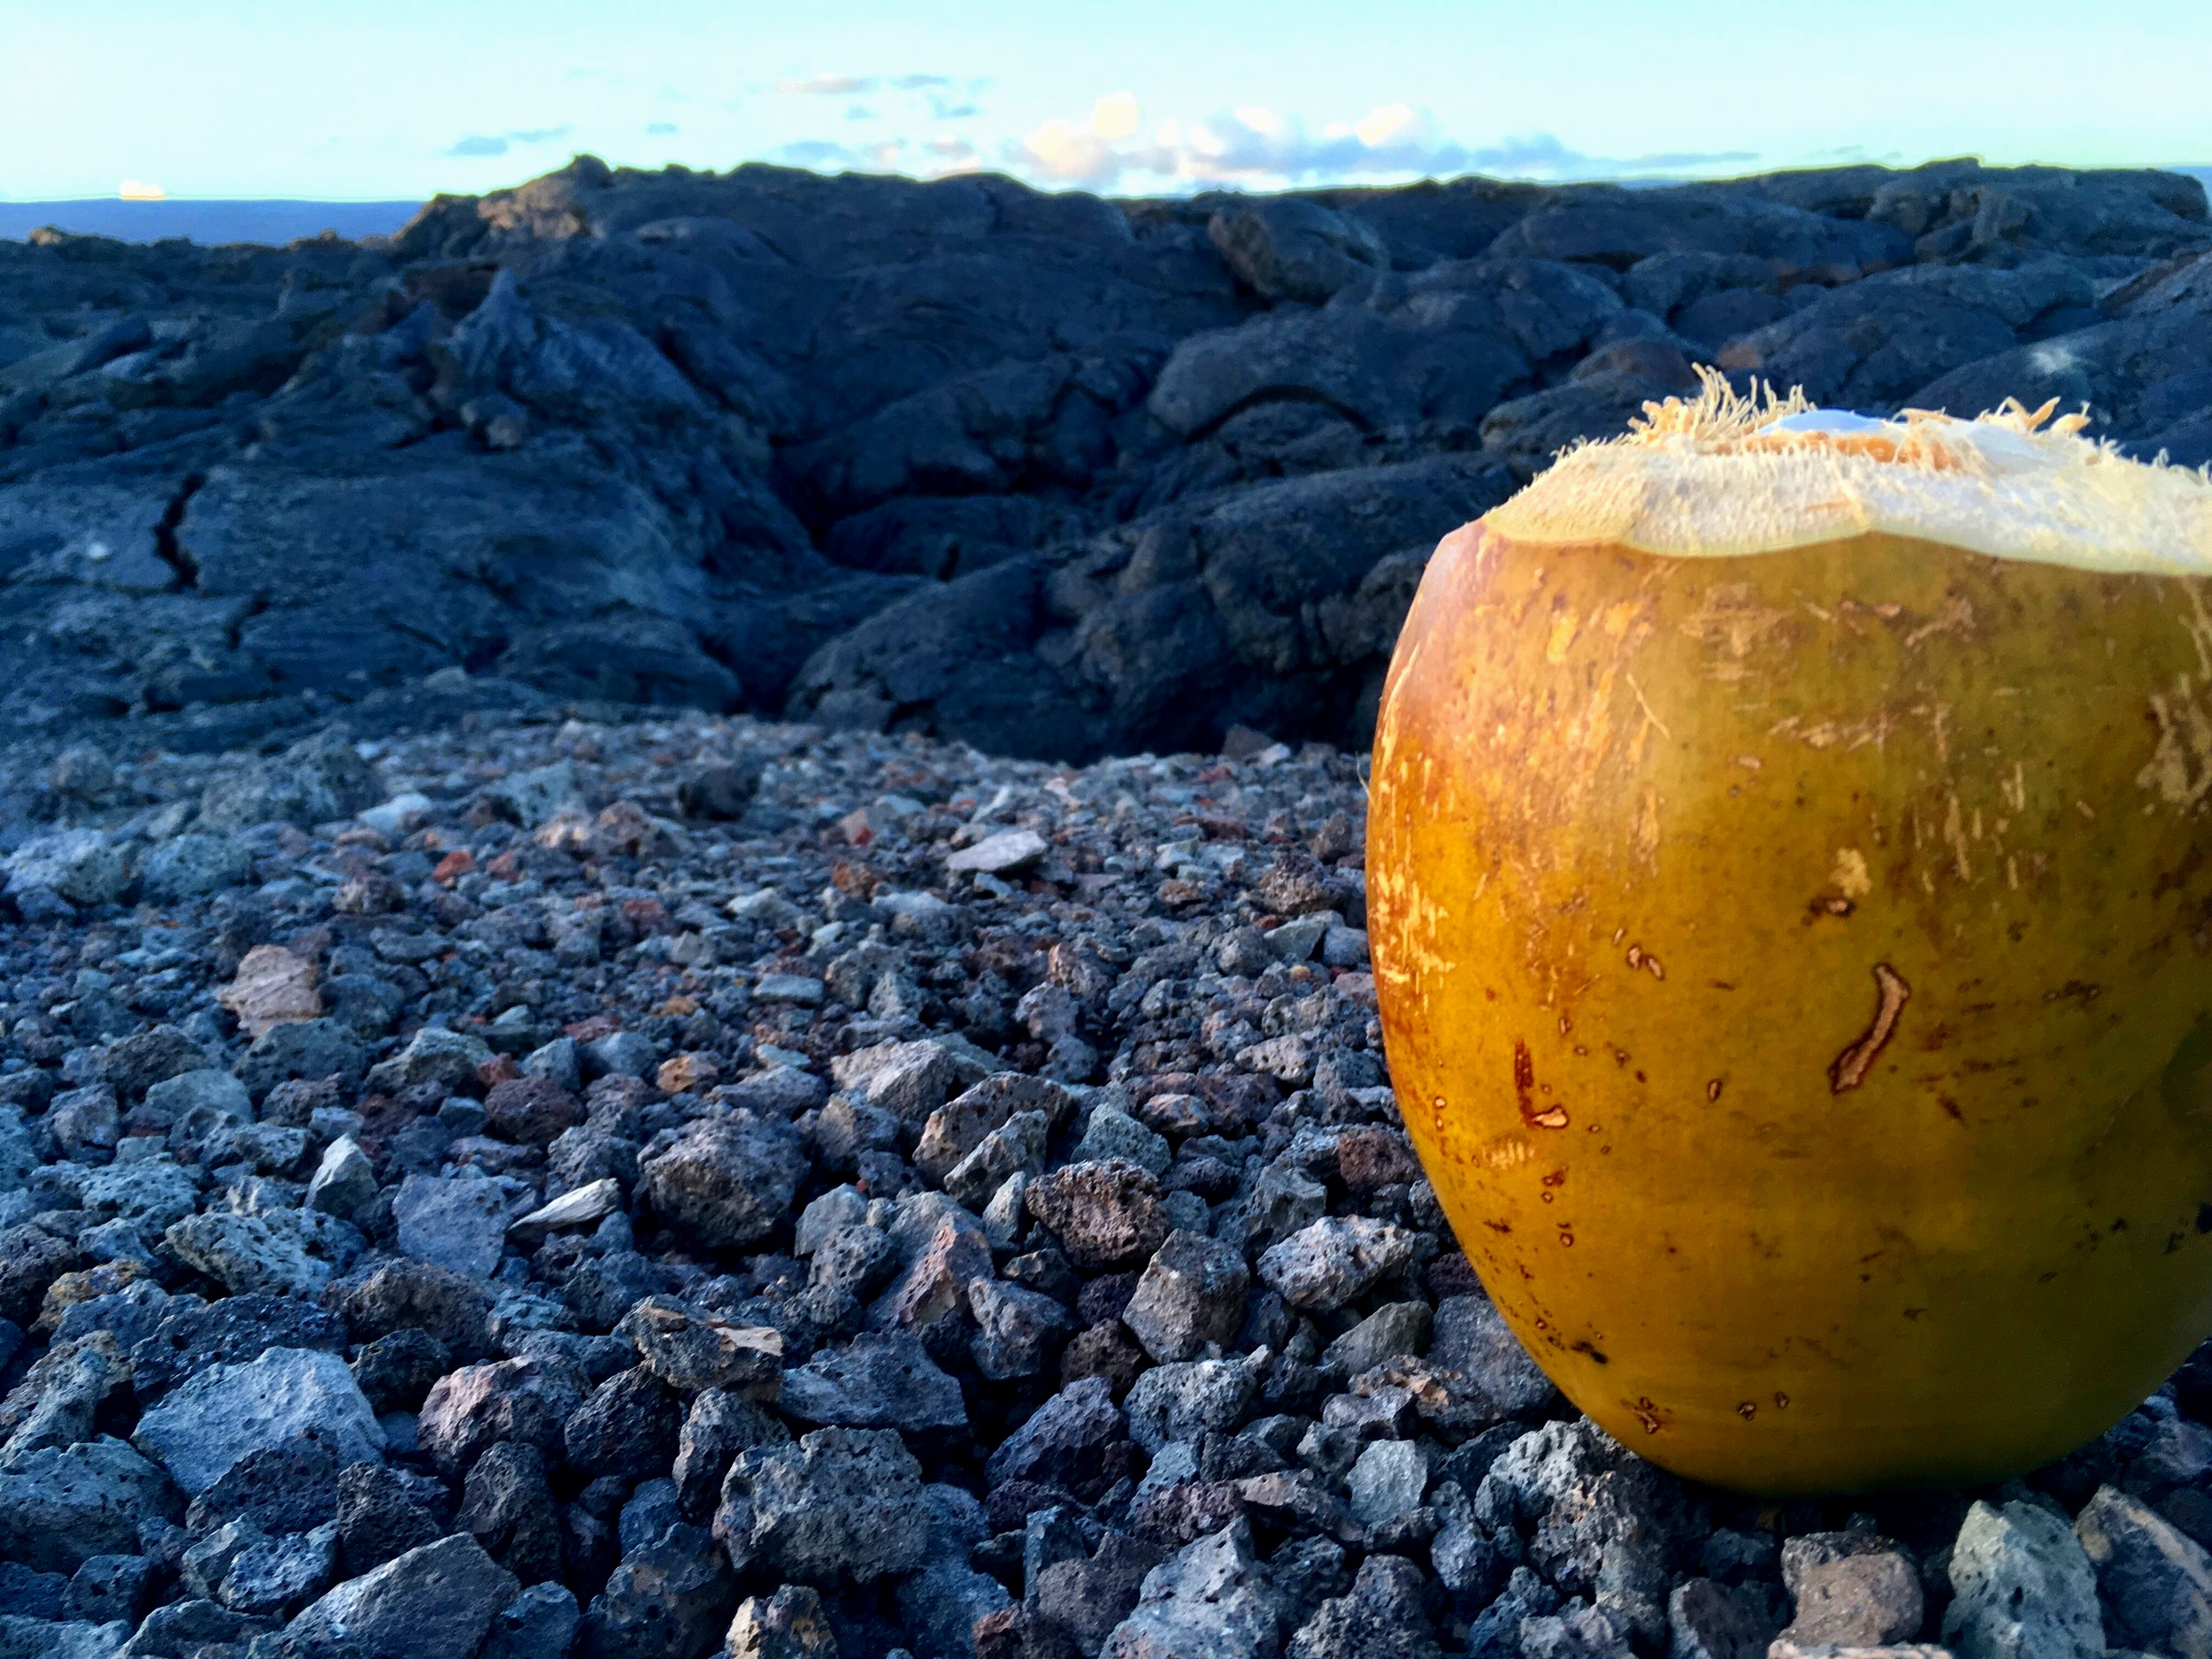 HAND PICKED COCO   HYDRATION FOR THE HIKE